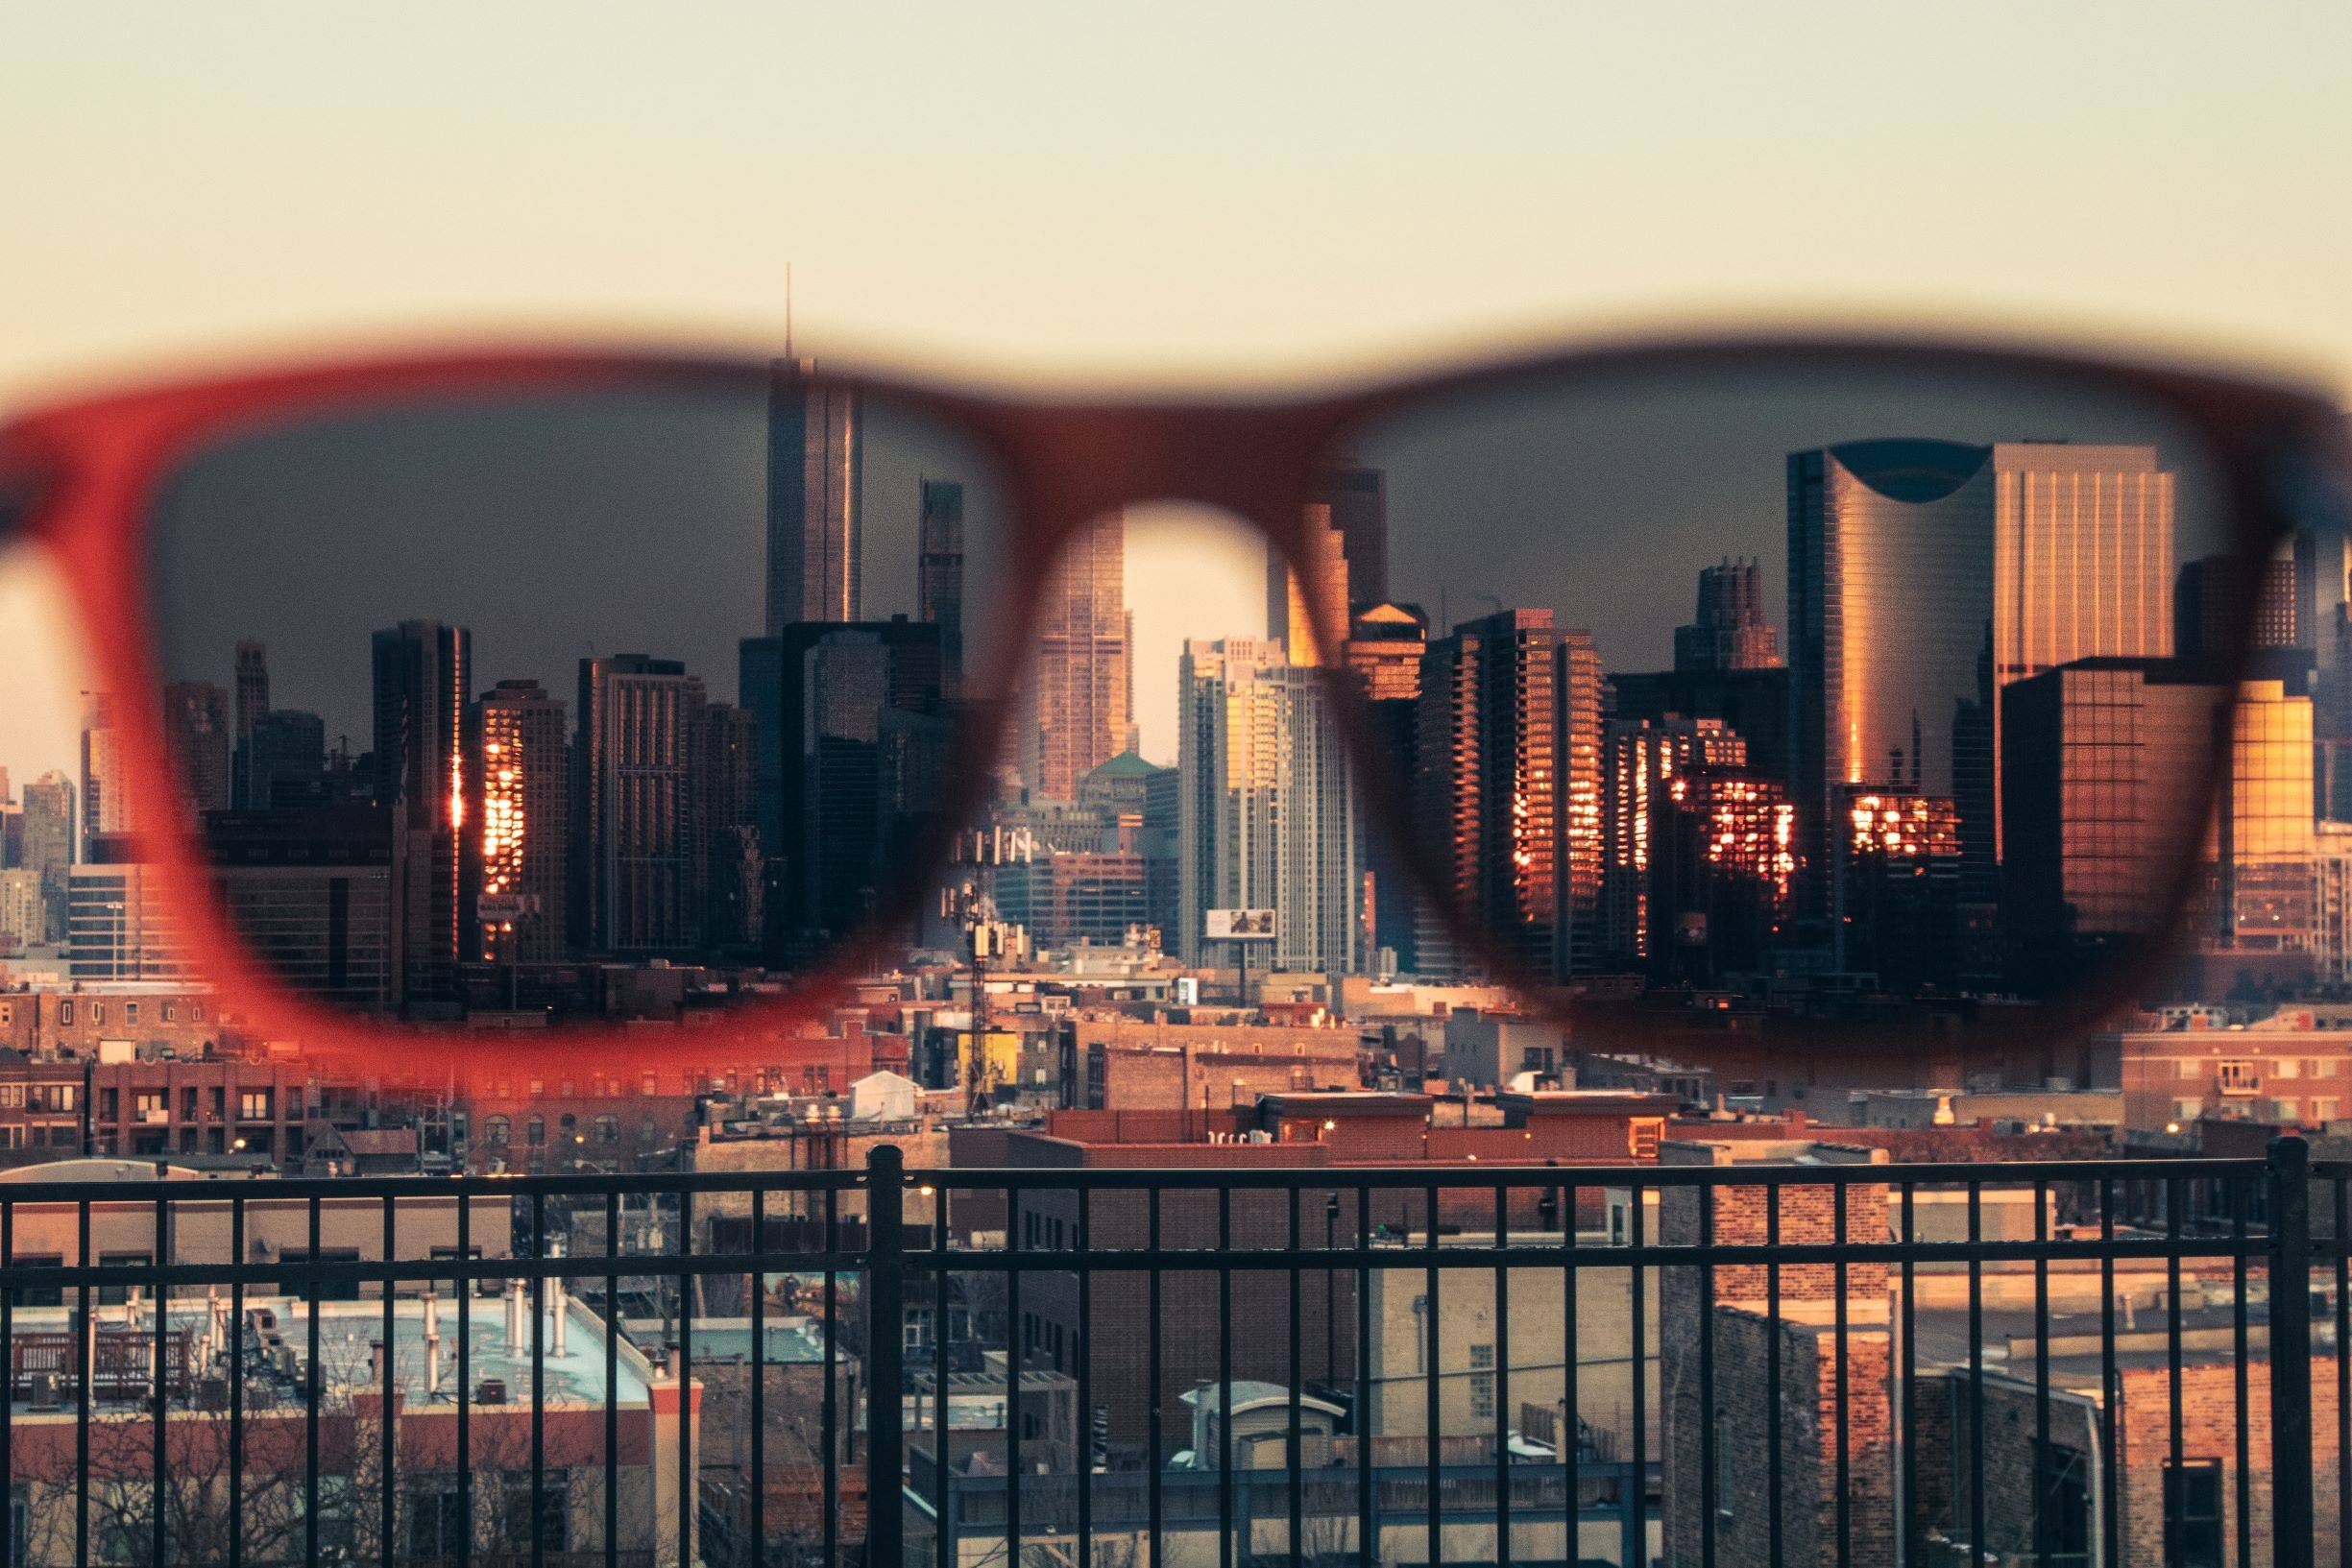 Joycoast Sunglasses with City View